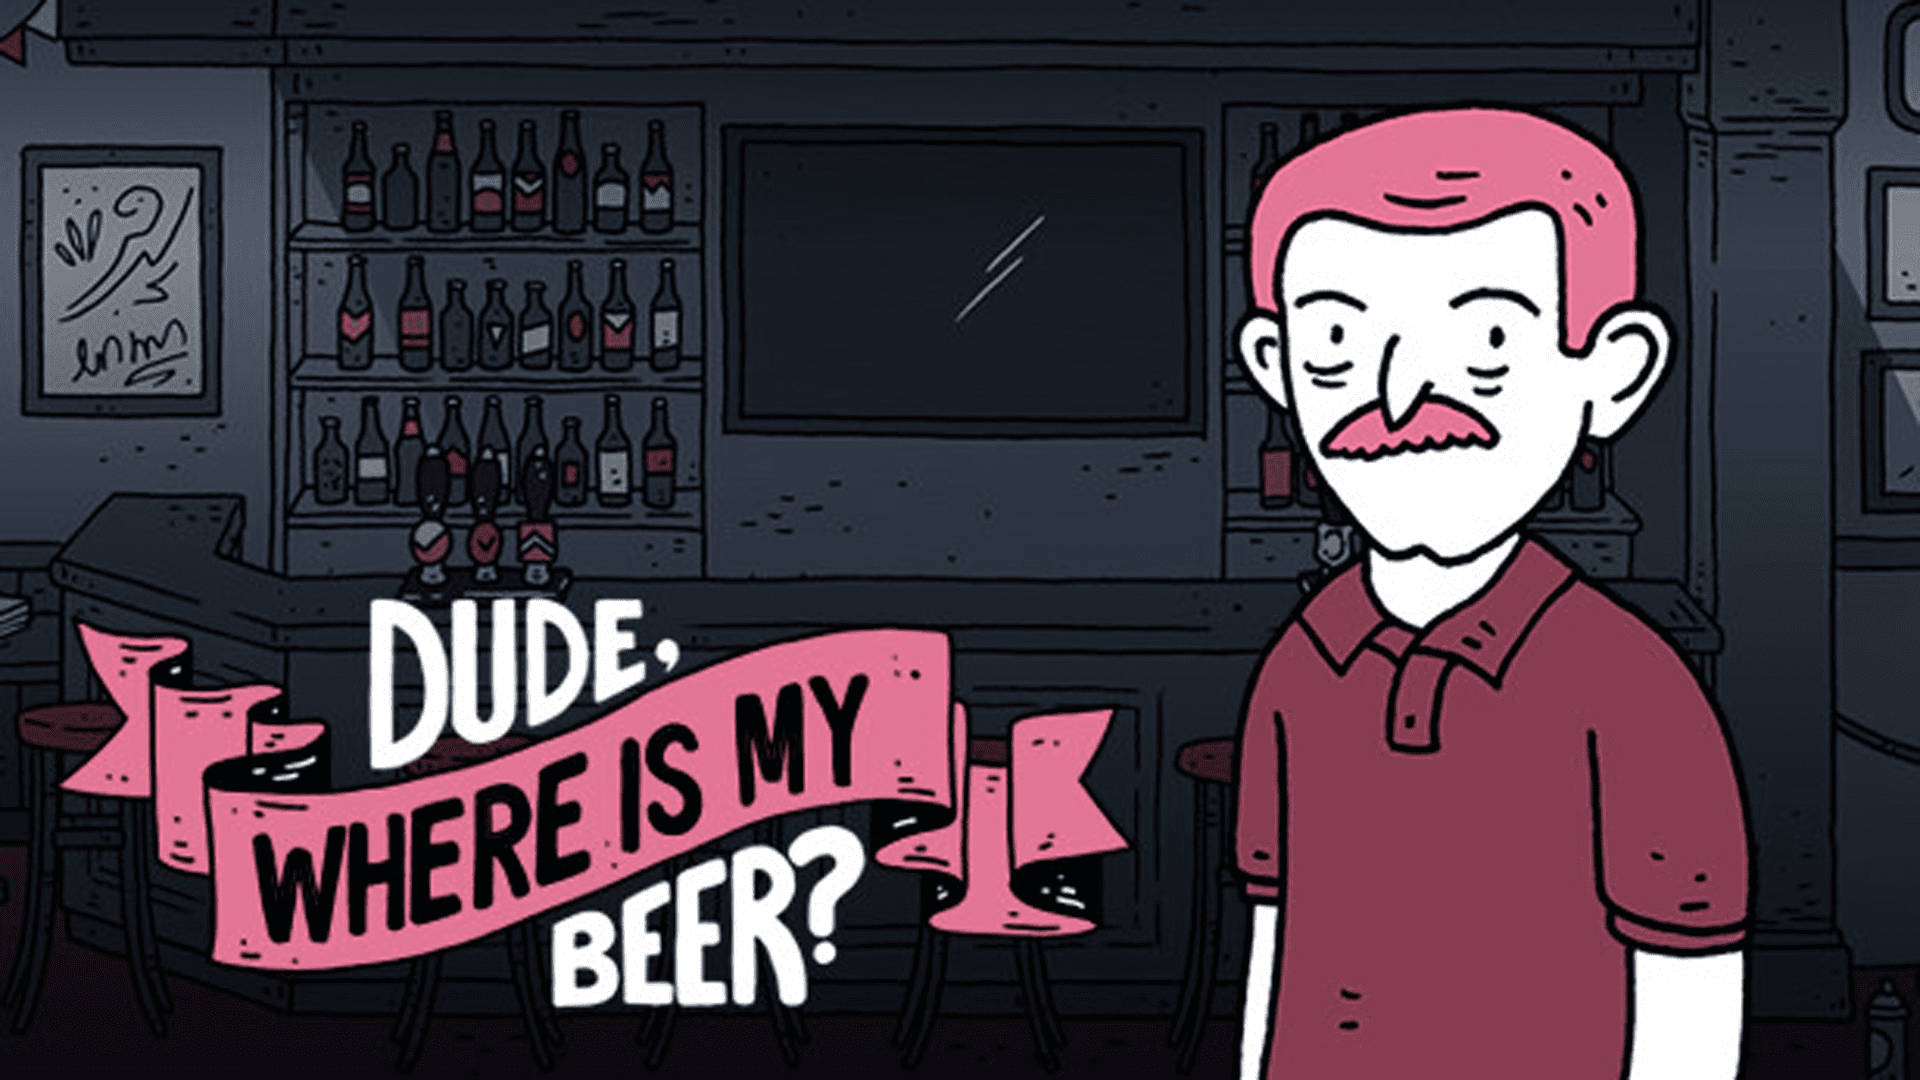 Dude, Where Is My Beer?